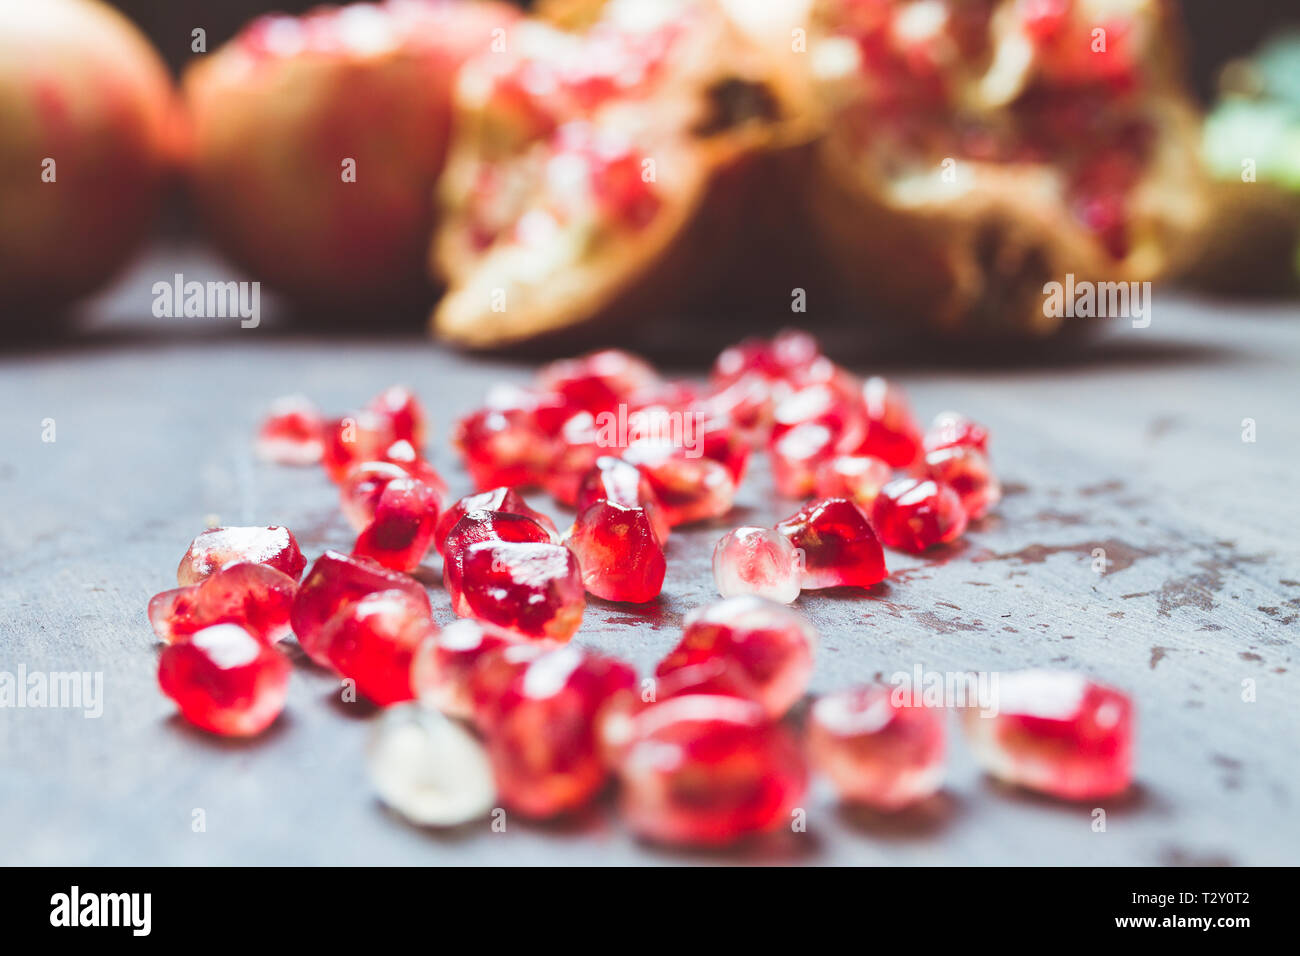 fruit pomegranates for advertising and gastronomic photography - Stock Image